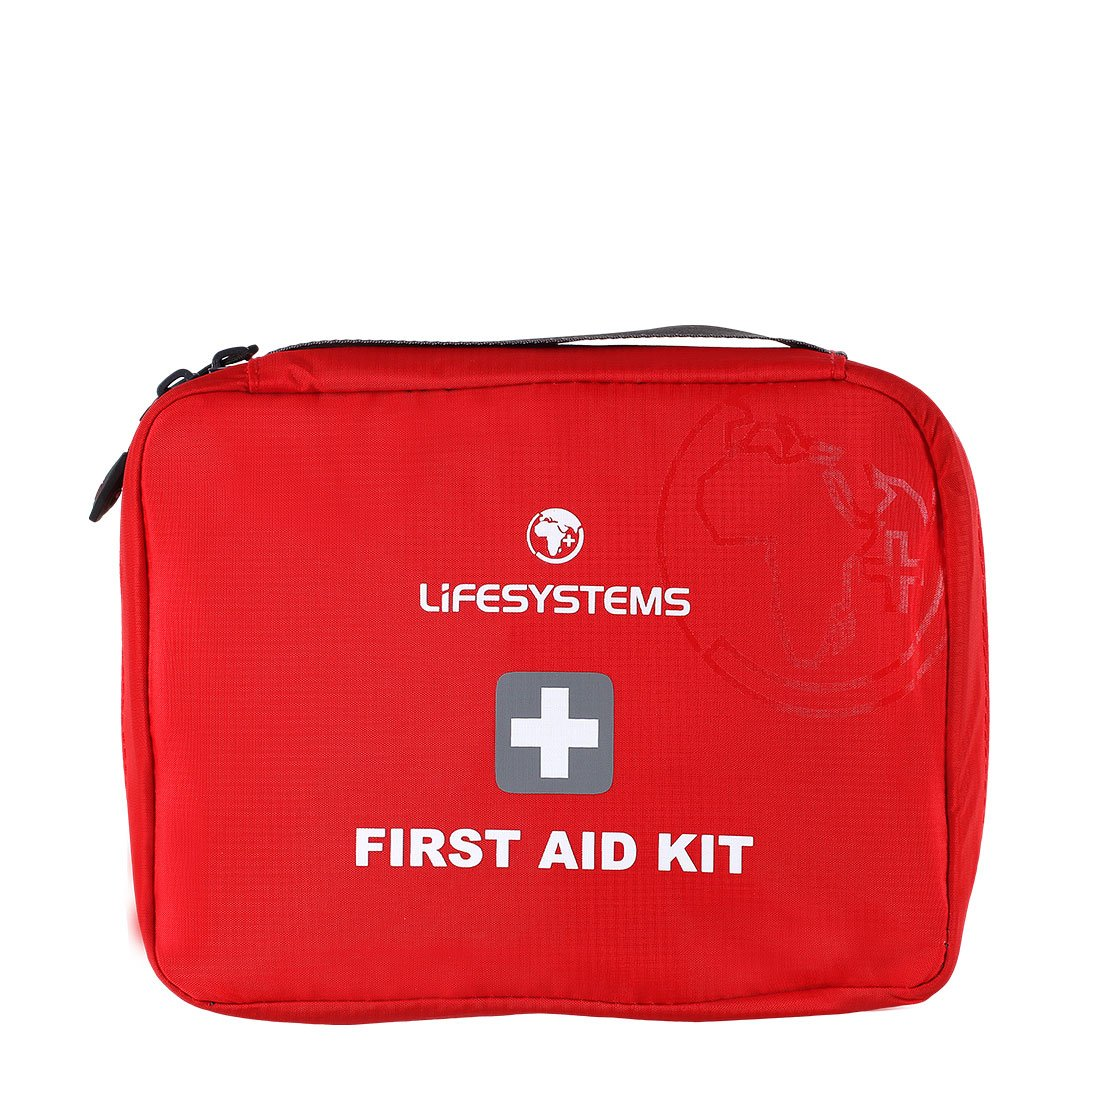 First Aid Case Empty First Aid Bags Lifesystems